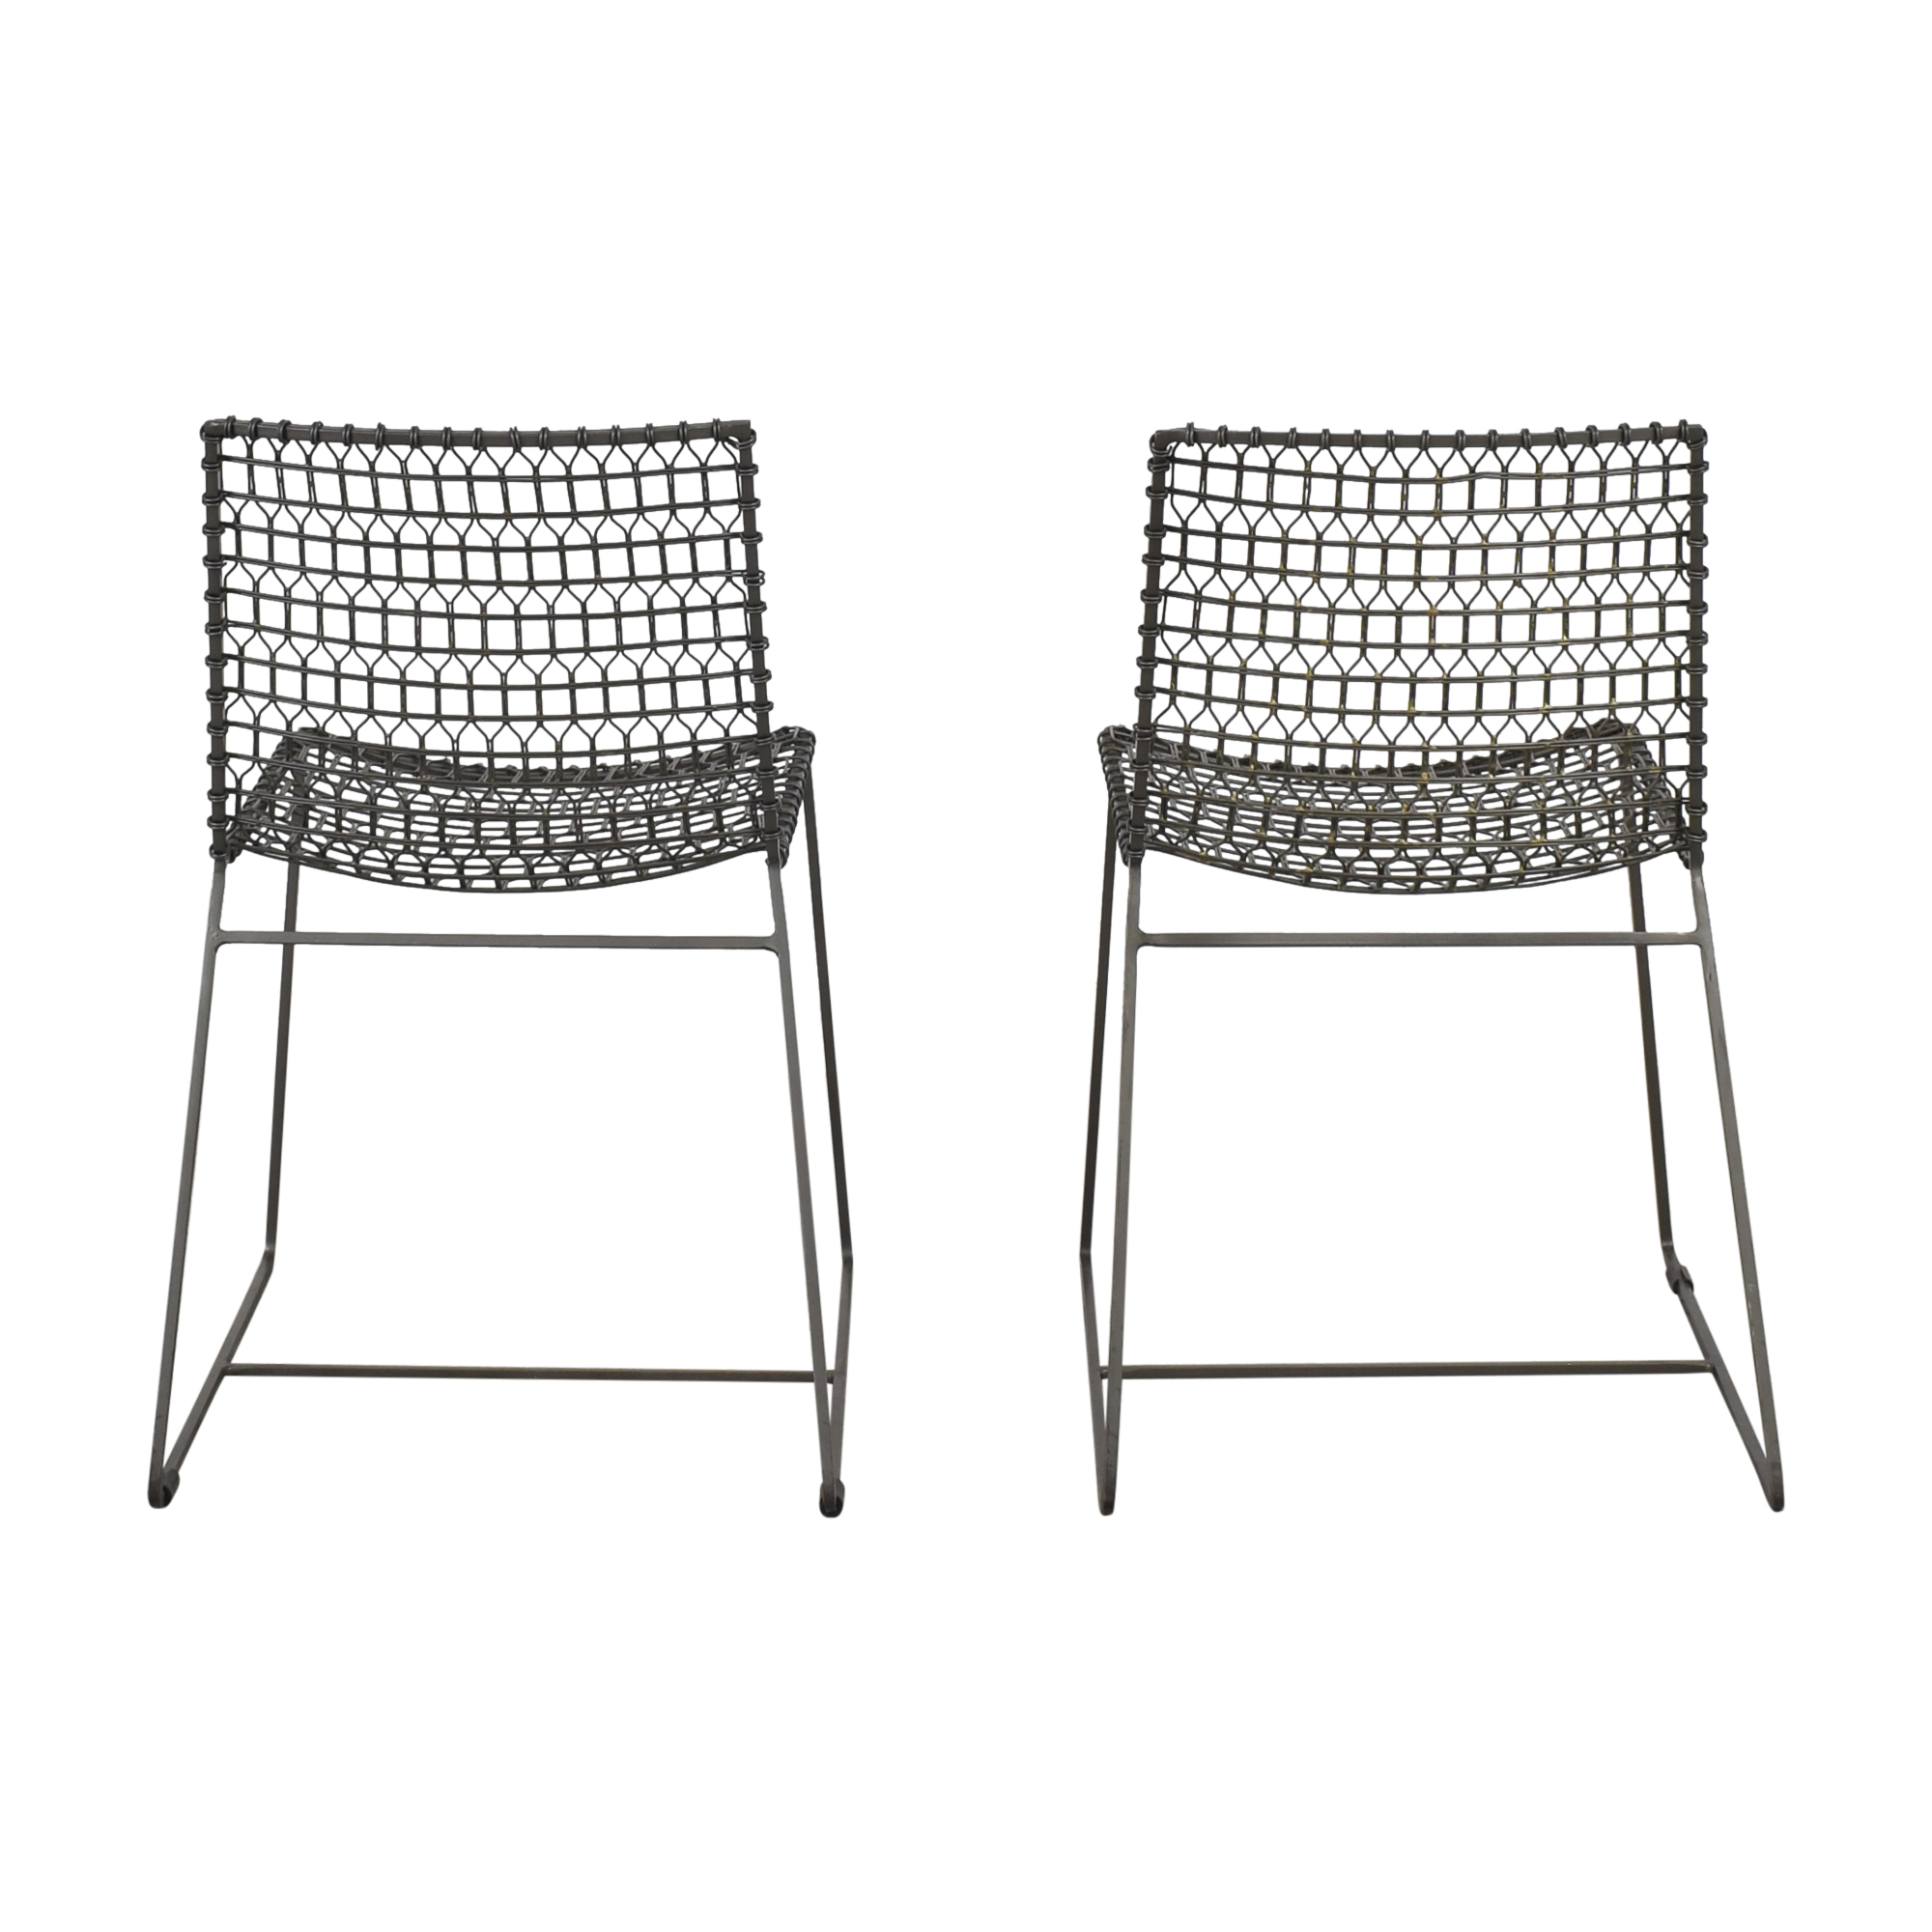 Crate & Barrel Crate & Barrel Tig Dining Chairs nyc